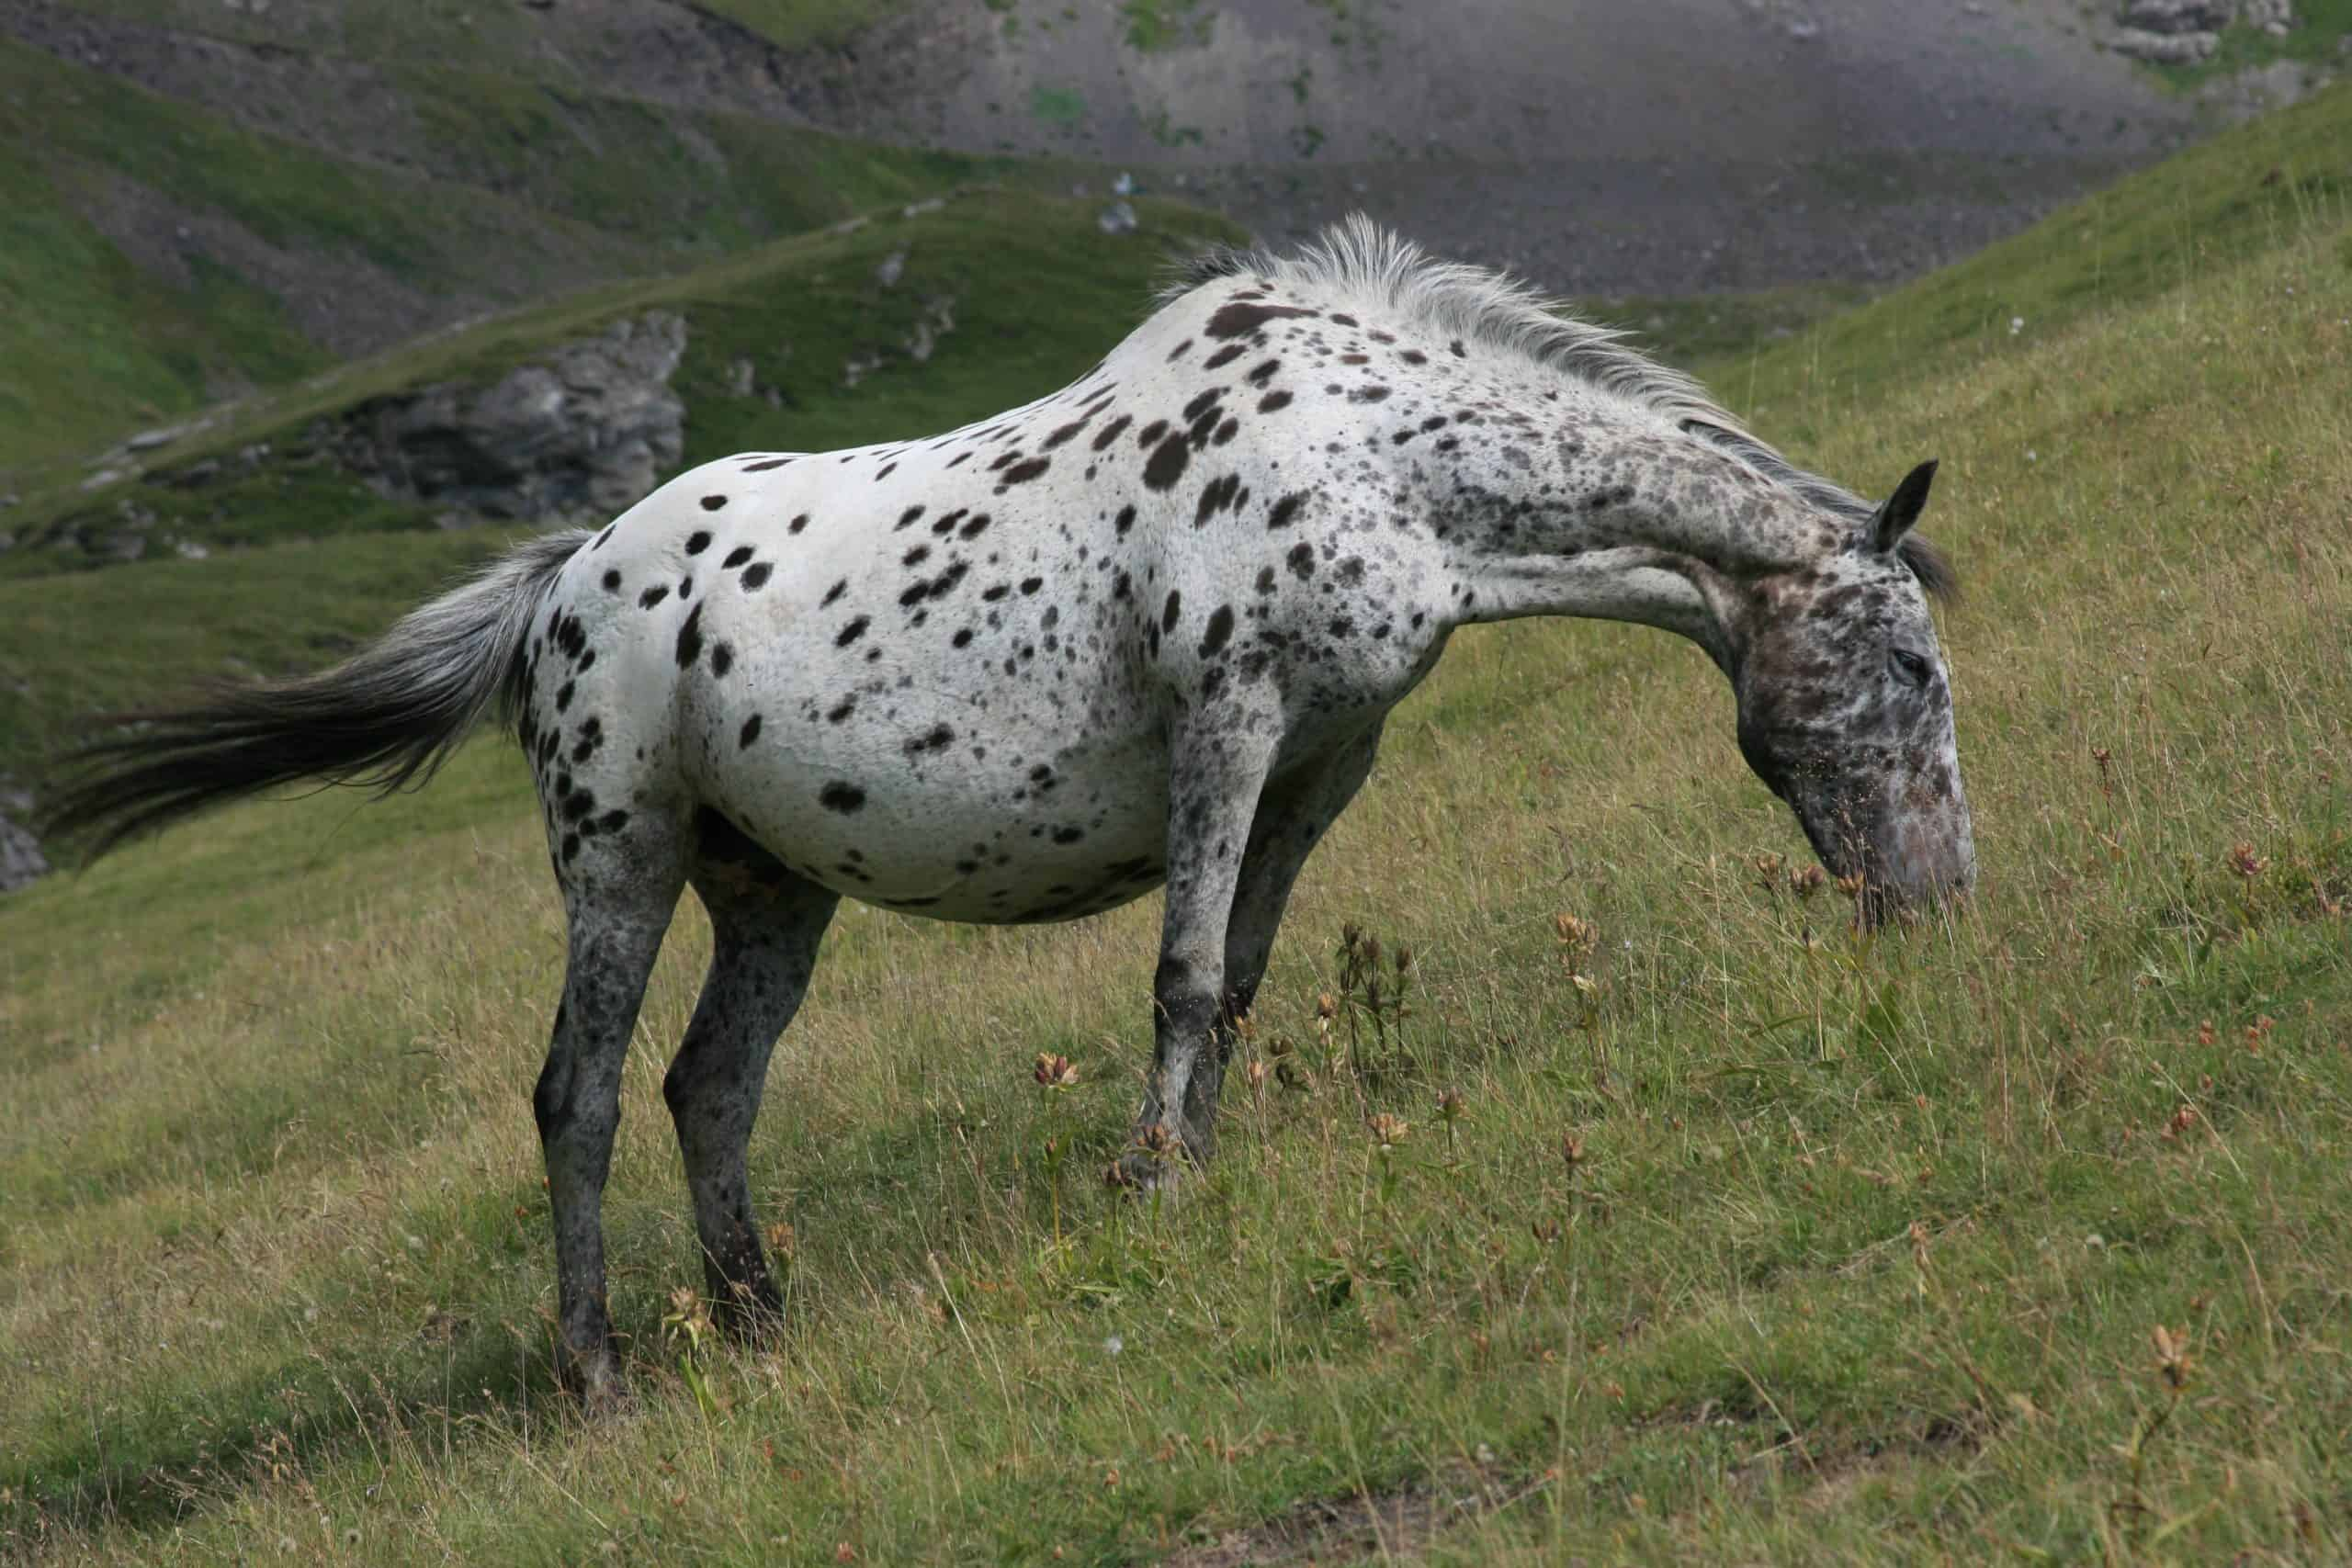 An Appaloosa Horse eating in wild pastures in French Alps.